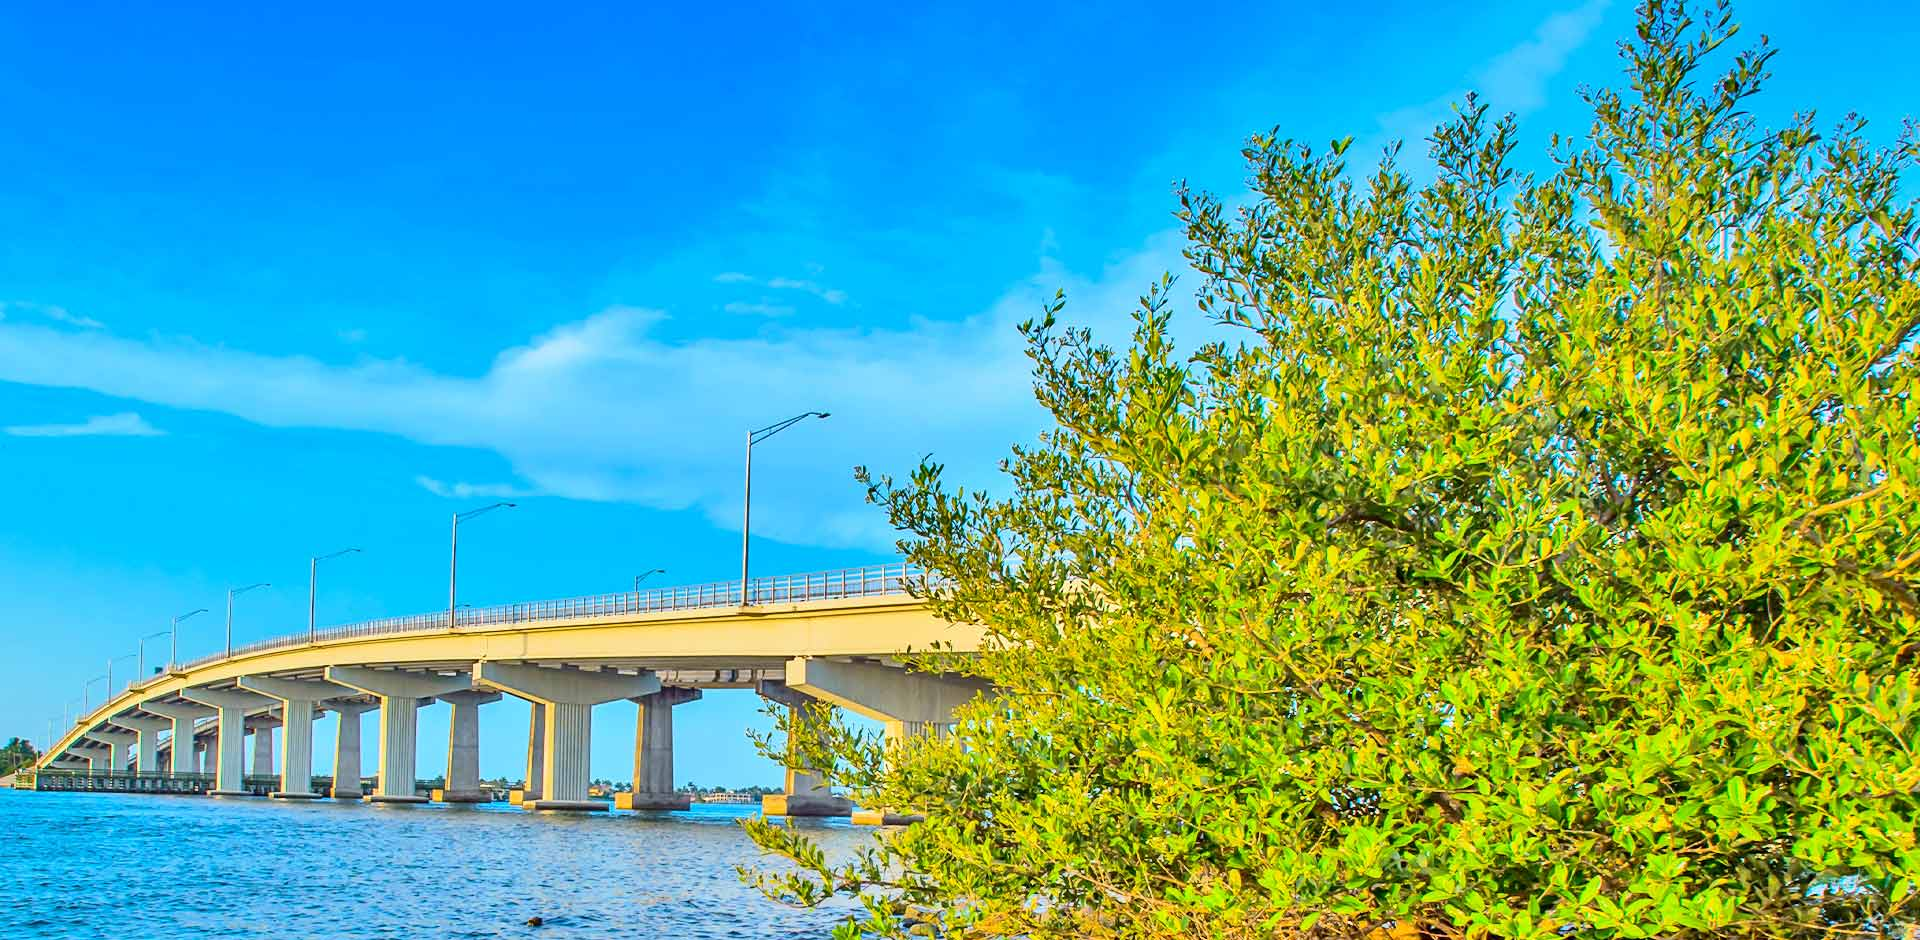 Jolly Bridge on Marco Island, Florida | Fortune's Lawn, Land & Tree Service